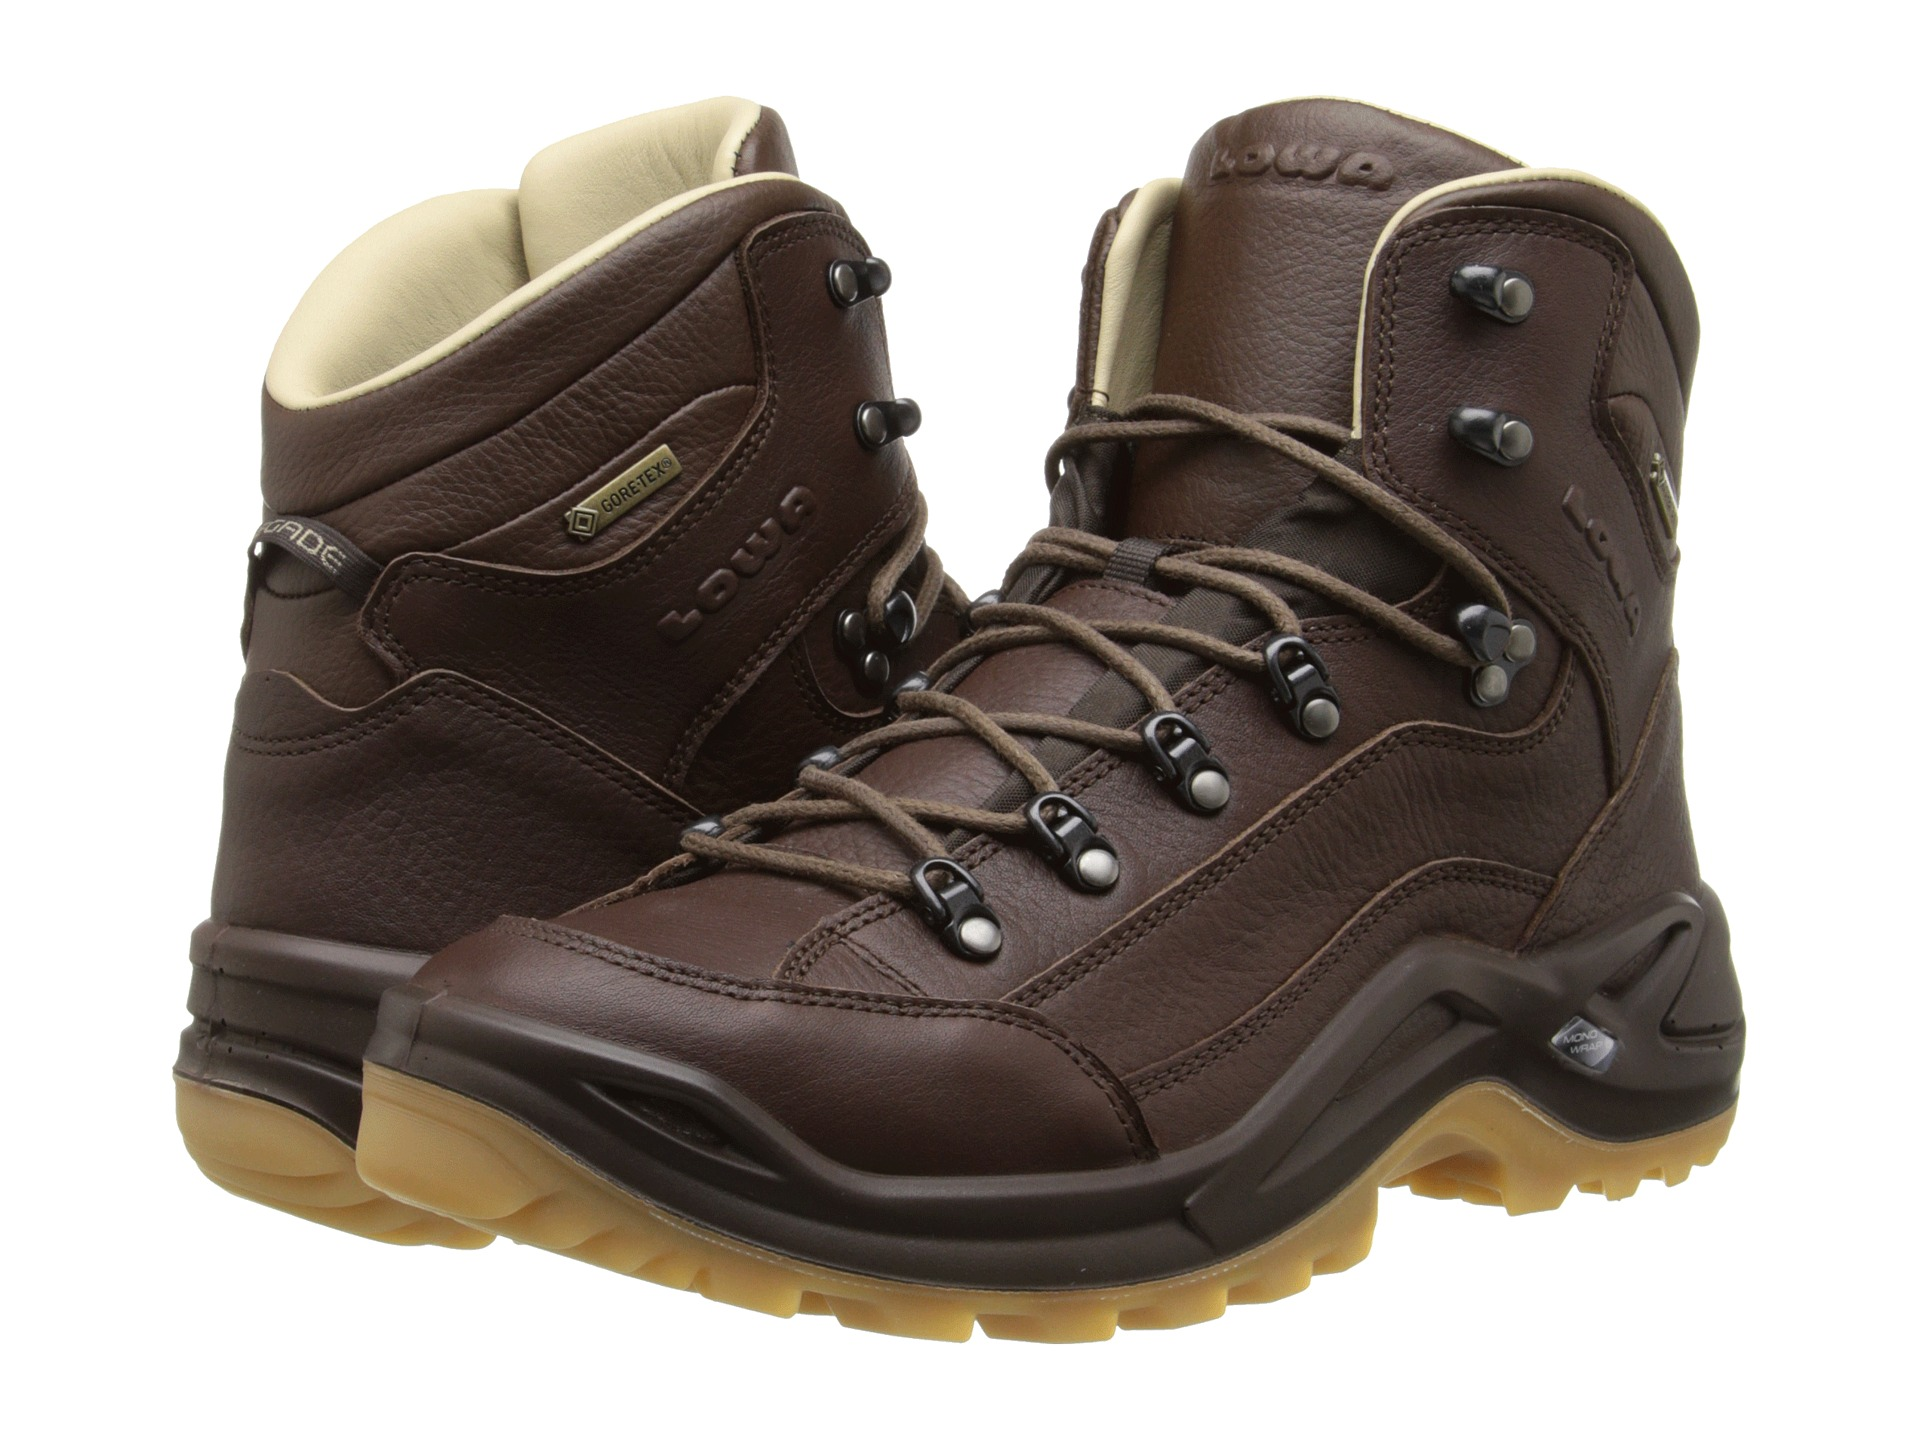 Lowa Renegade Shoes Review